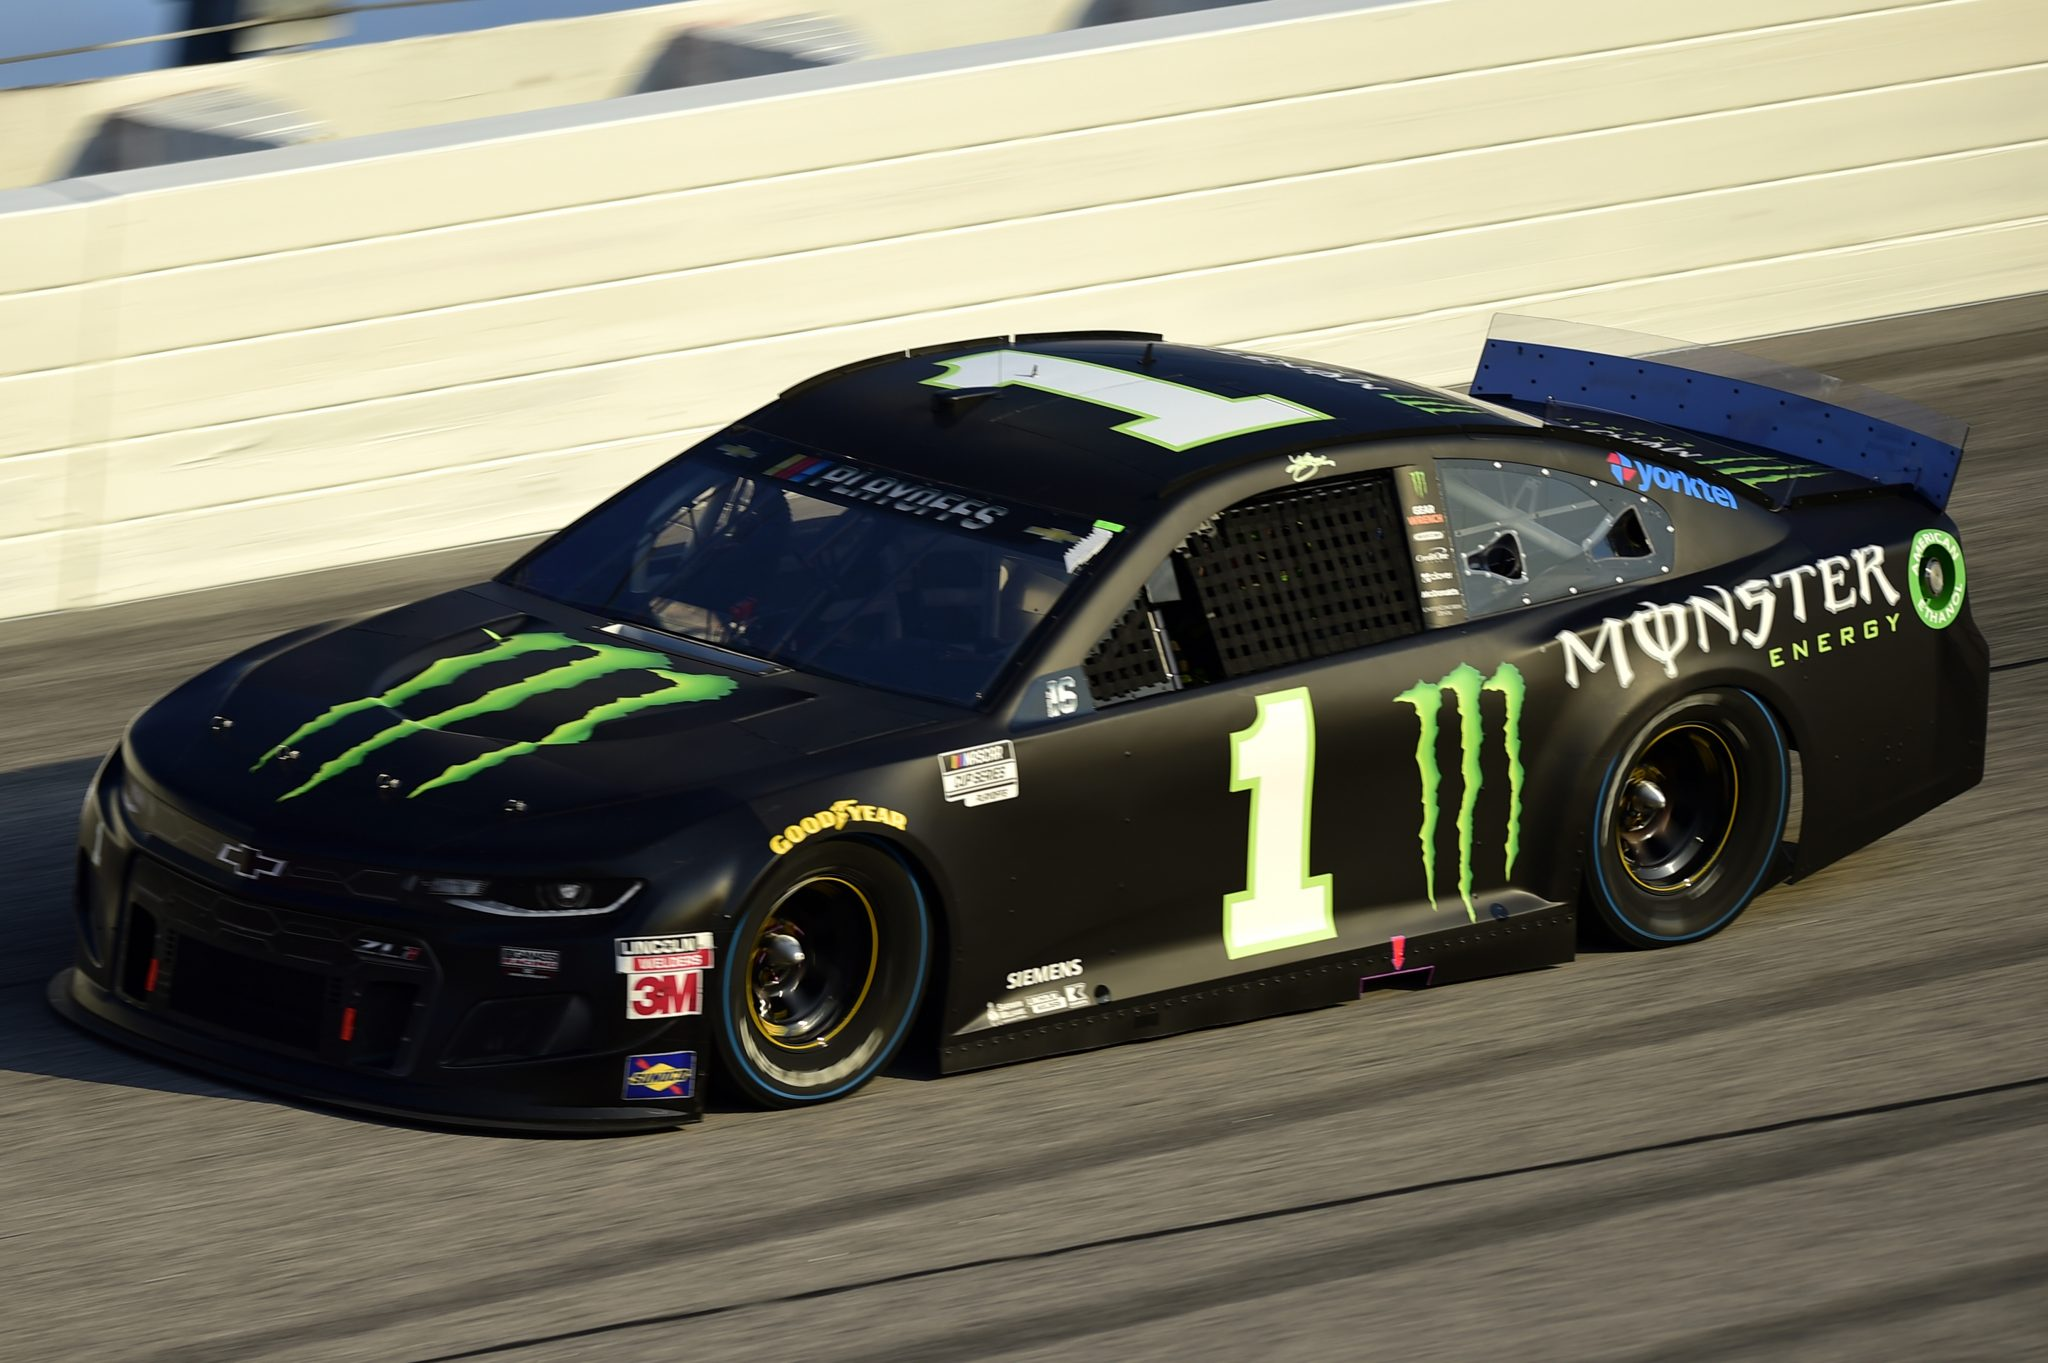 DARLINGTON, SOUTH CAROLINA - SEPTEMBER 06: Kurt Busch, driver of the #1 Monster Energy Chevrolet, drives during the NASCAR Cup Series Cook Out Southern 500 at Darlington Raceway on September 06, 2020 in Darlington, South Carolina. (Photo by Jared C. Tilton/Getty Images) | Getty Images